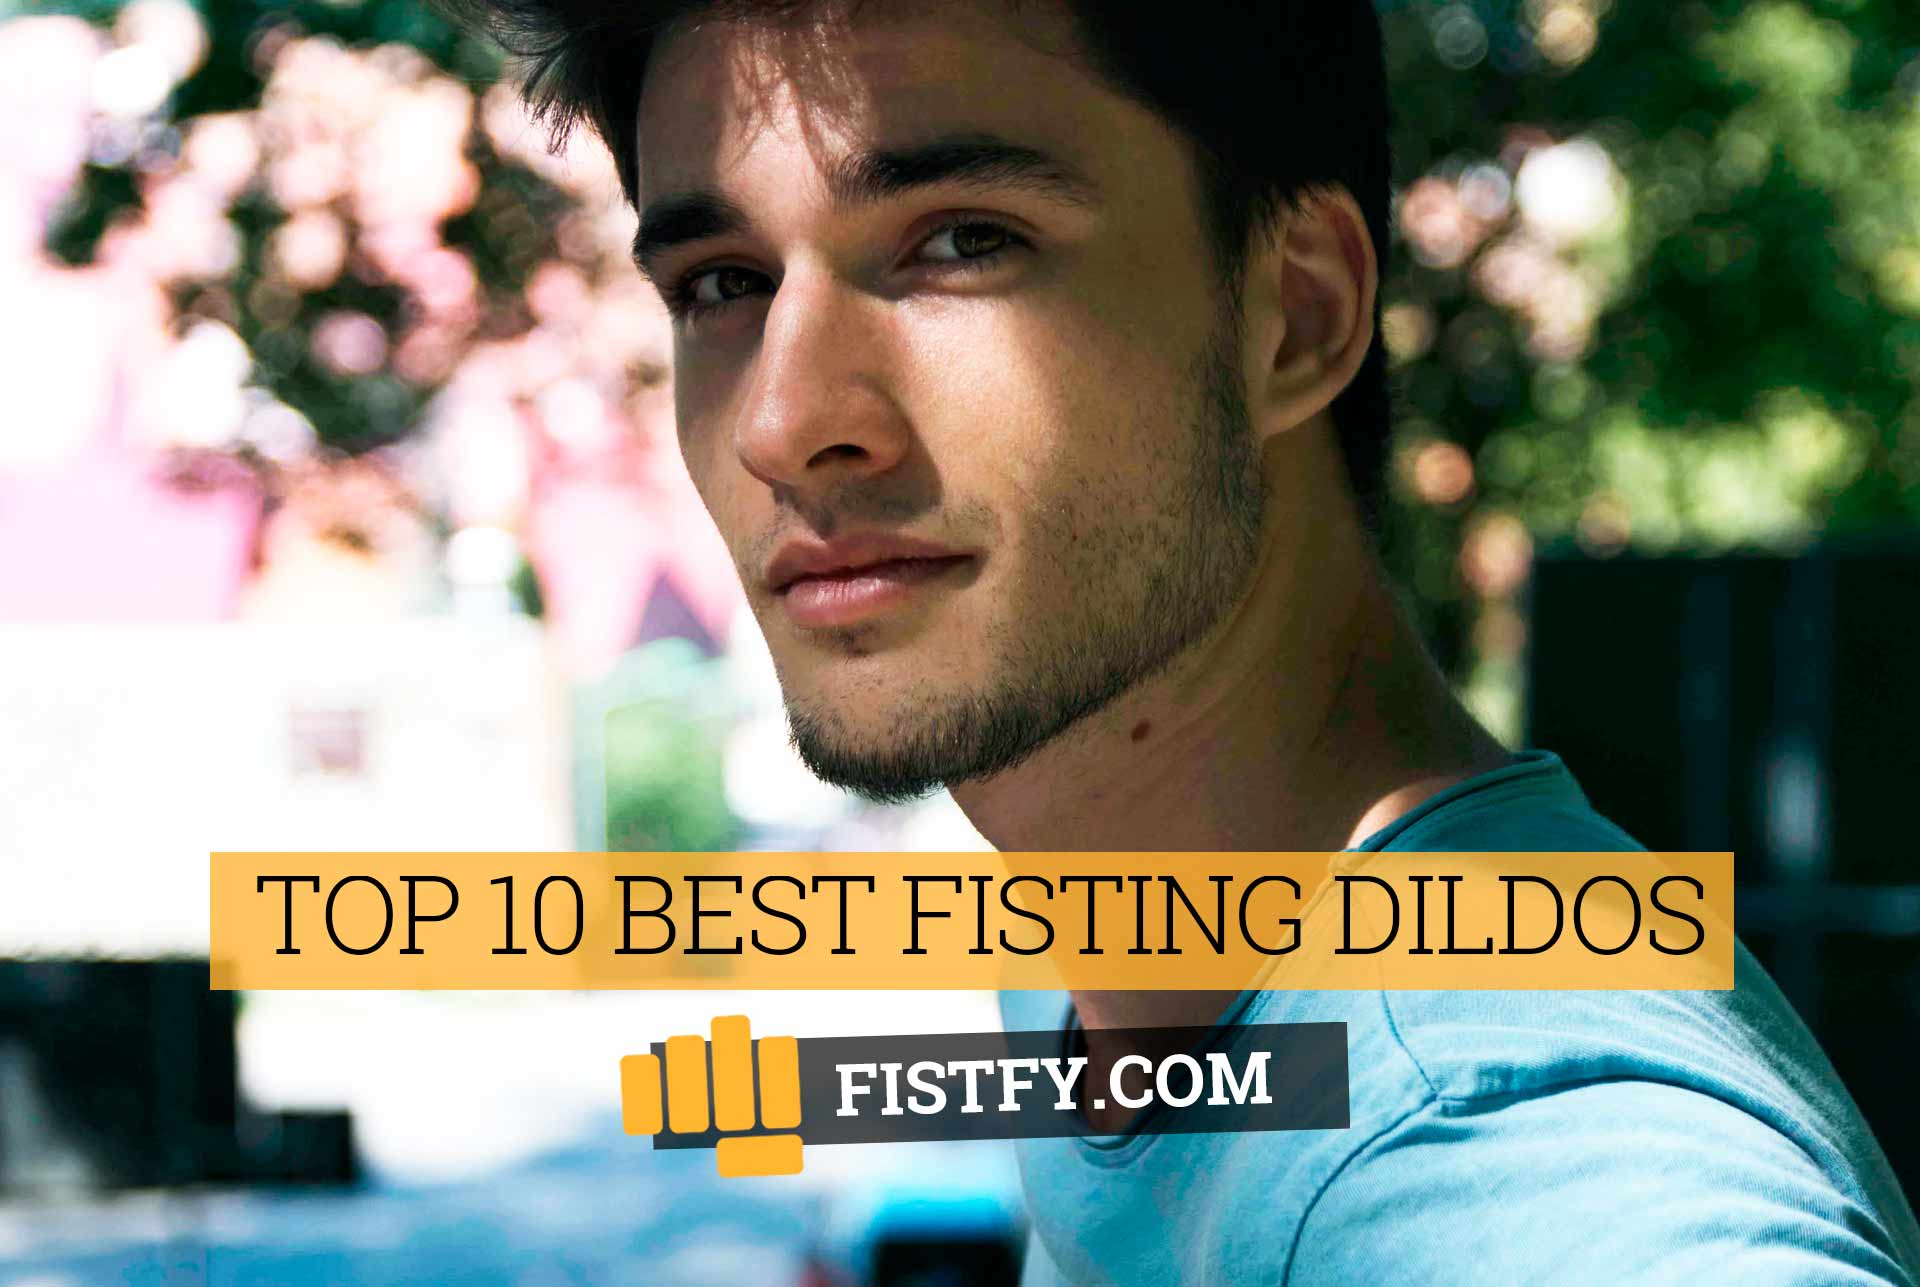 Top 10 Best Fisting dildos